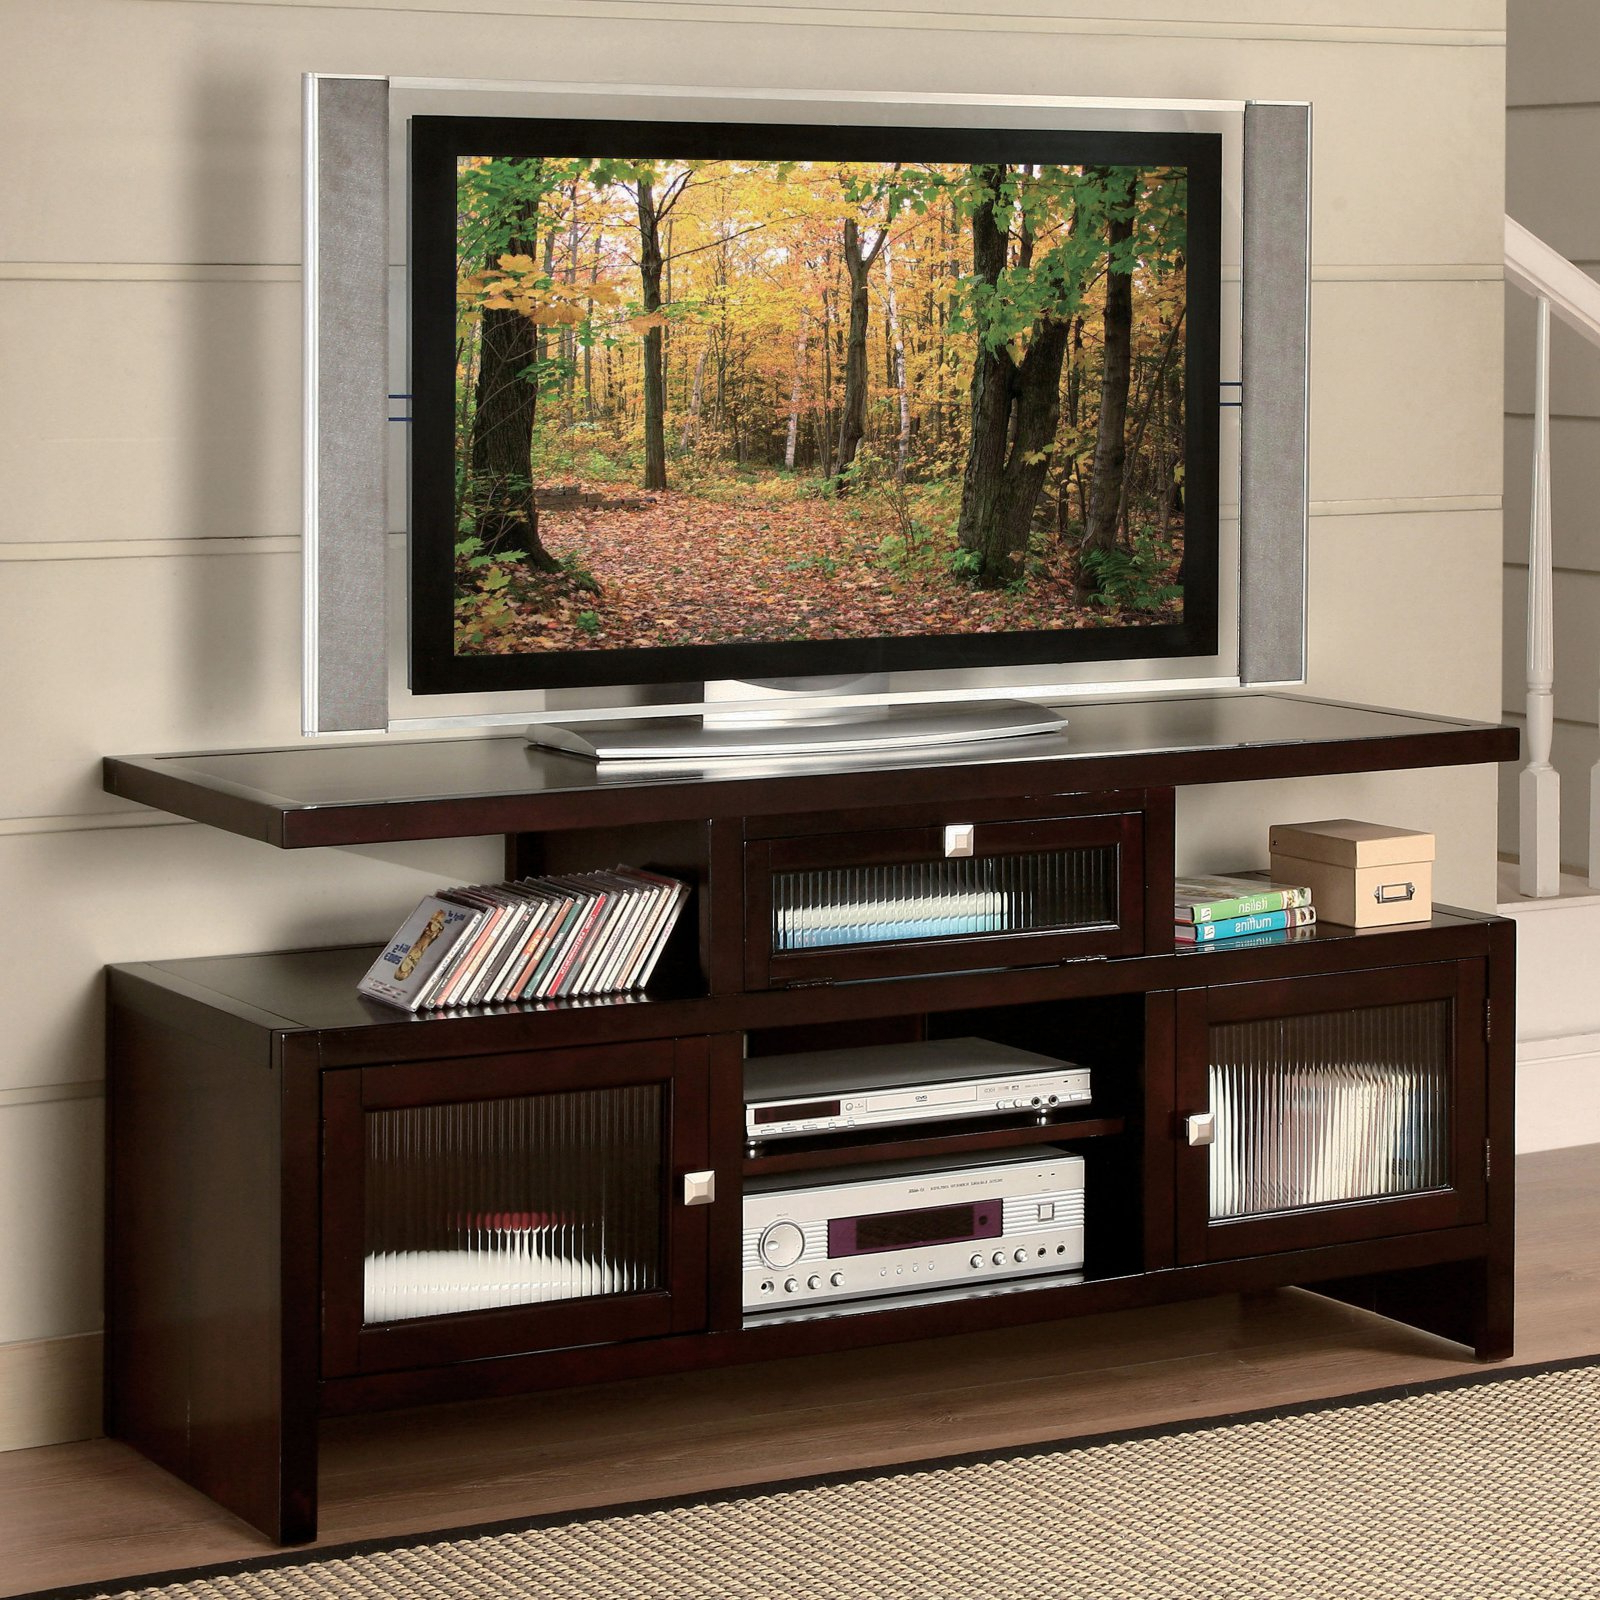 """Acme Jupiter Foldable Tv Stand For Tvs Up To 70"""", Espresso Pertaining To Broward Tv Stands For Tvs Up To 70"""" (View 14 of 20)"""